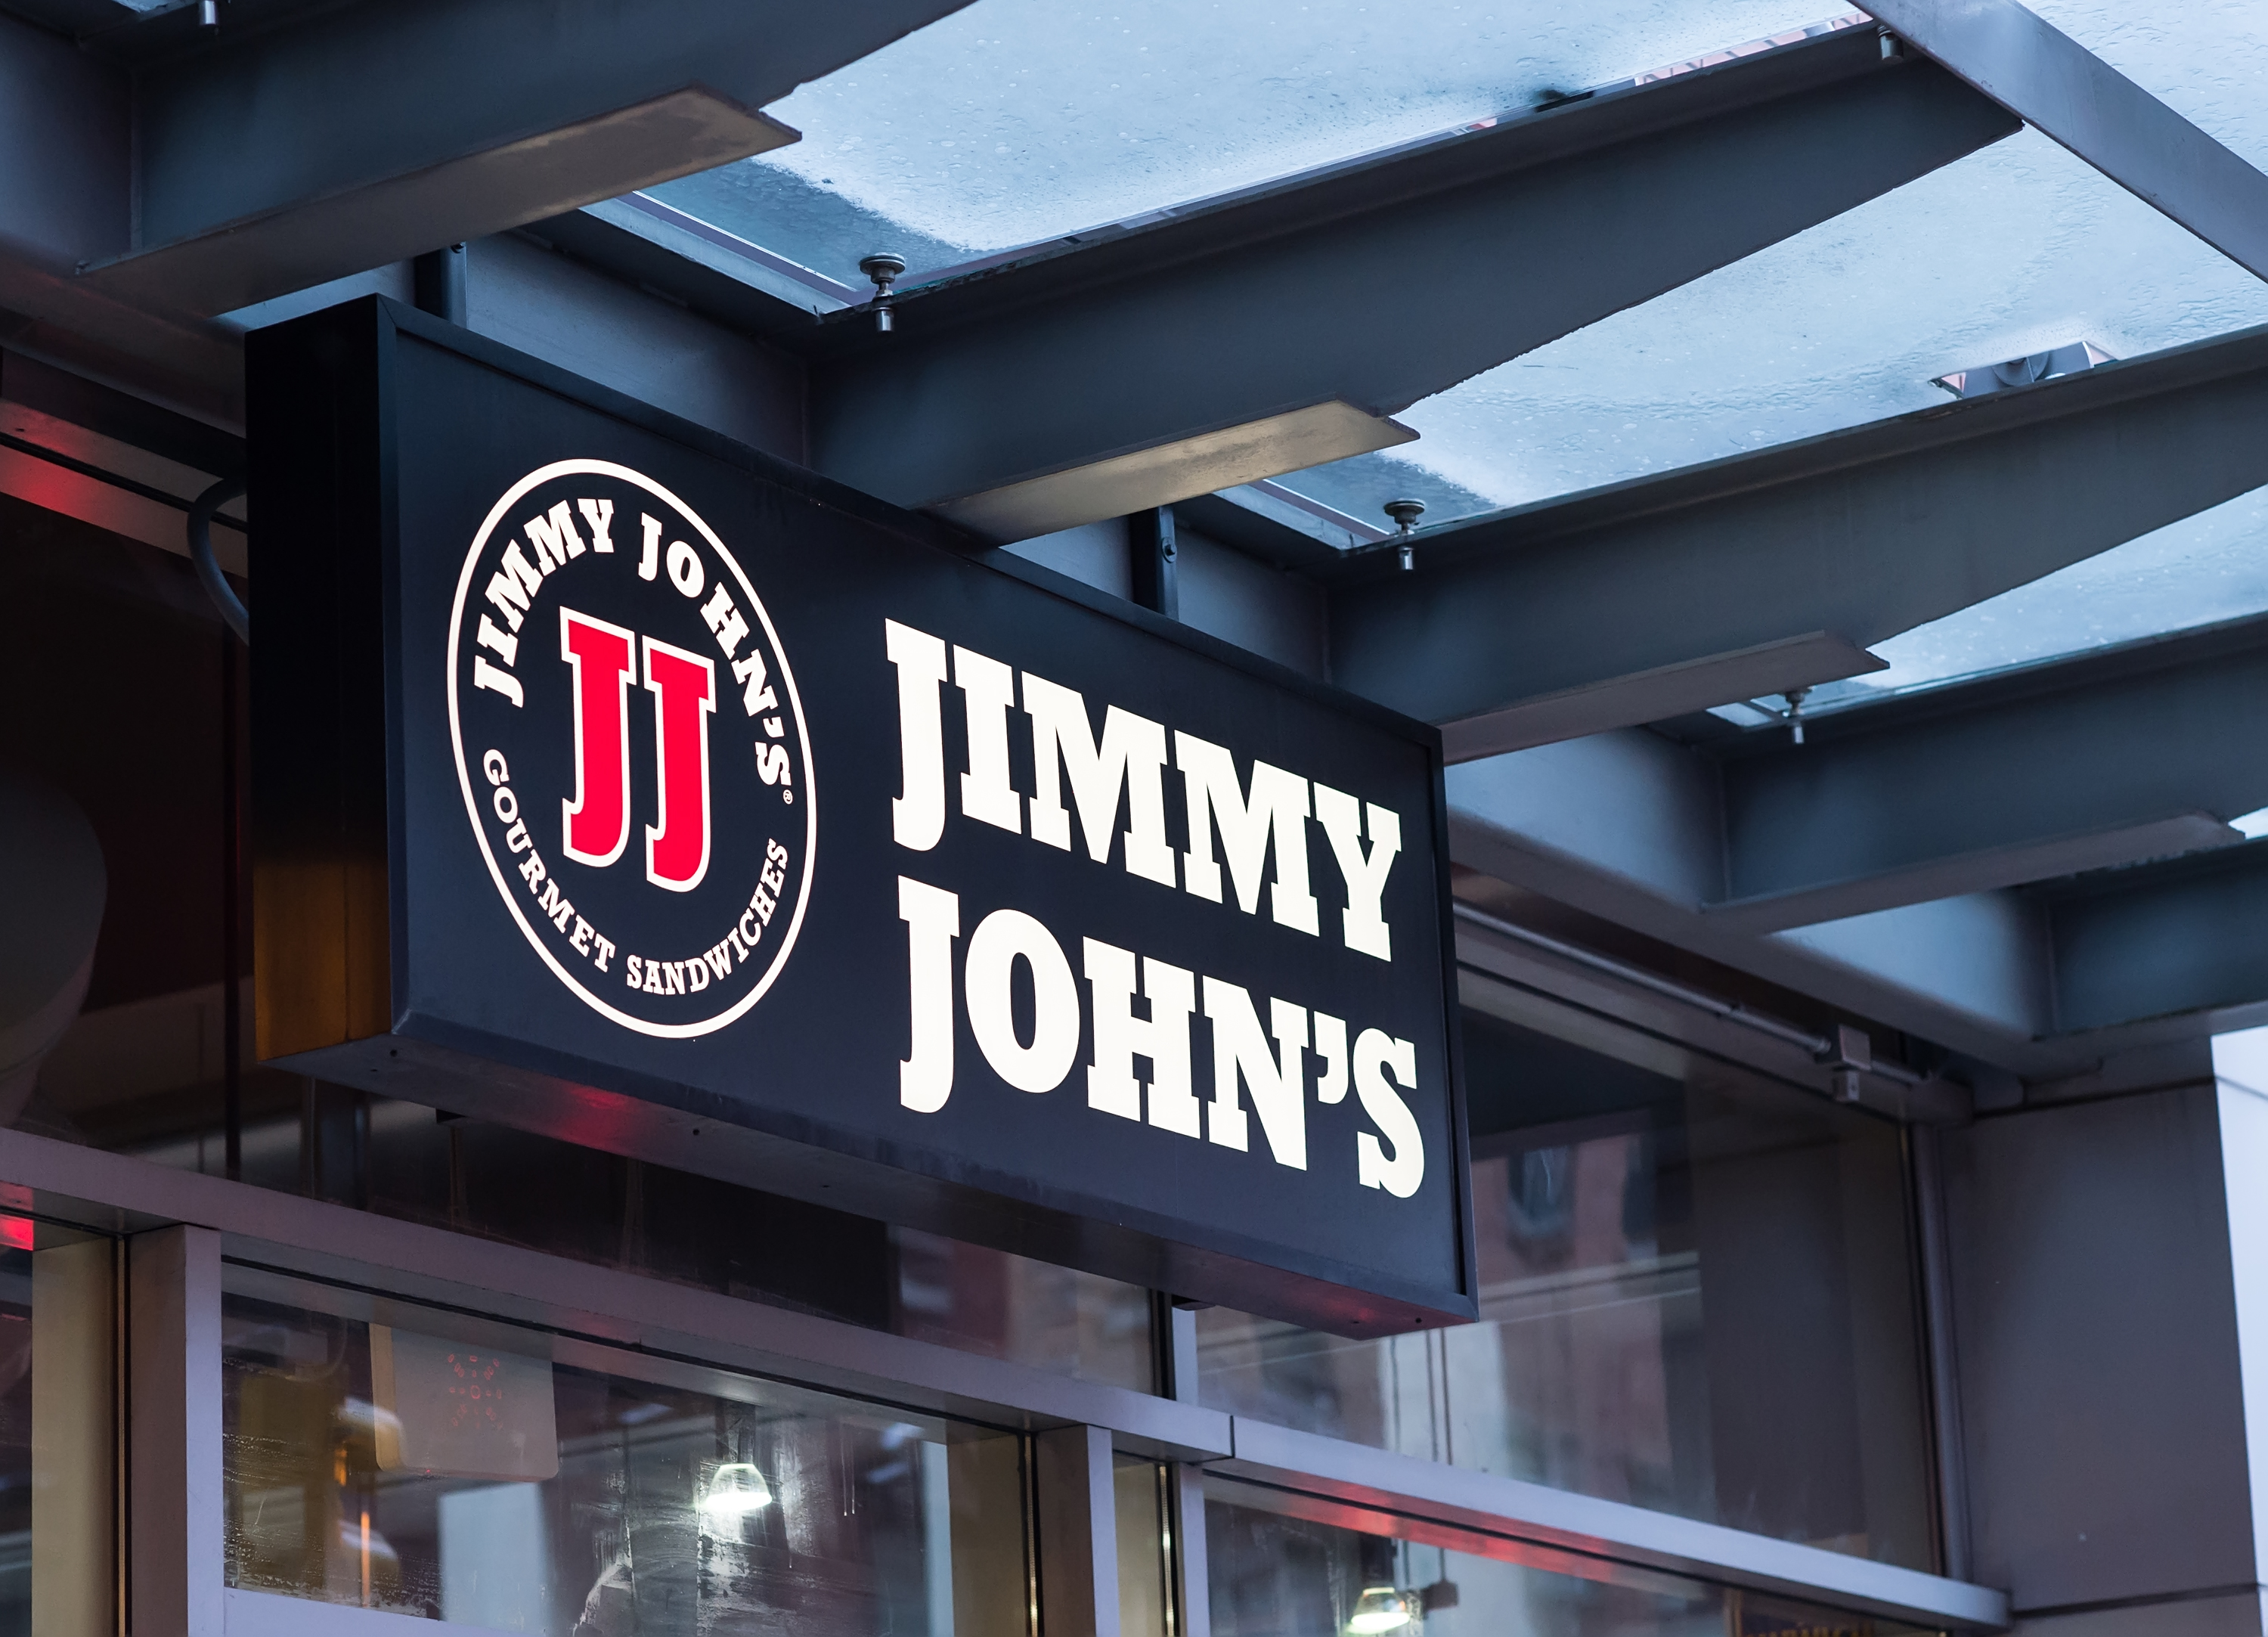 Jimmy John's is a company that makes workers sign non-compete agreements.